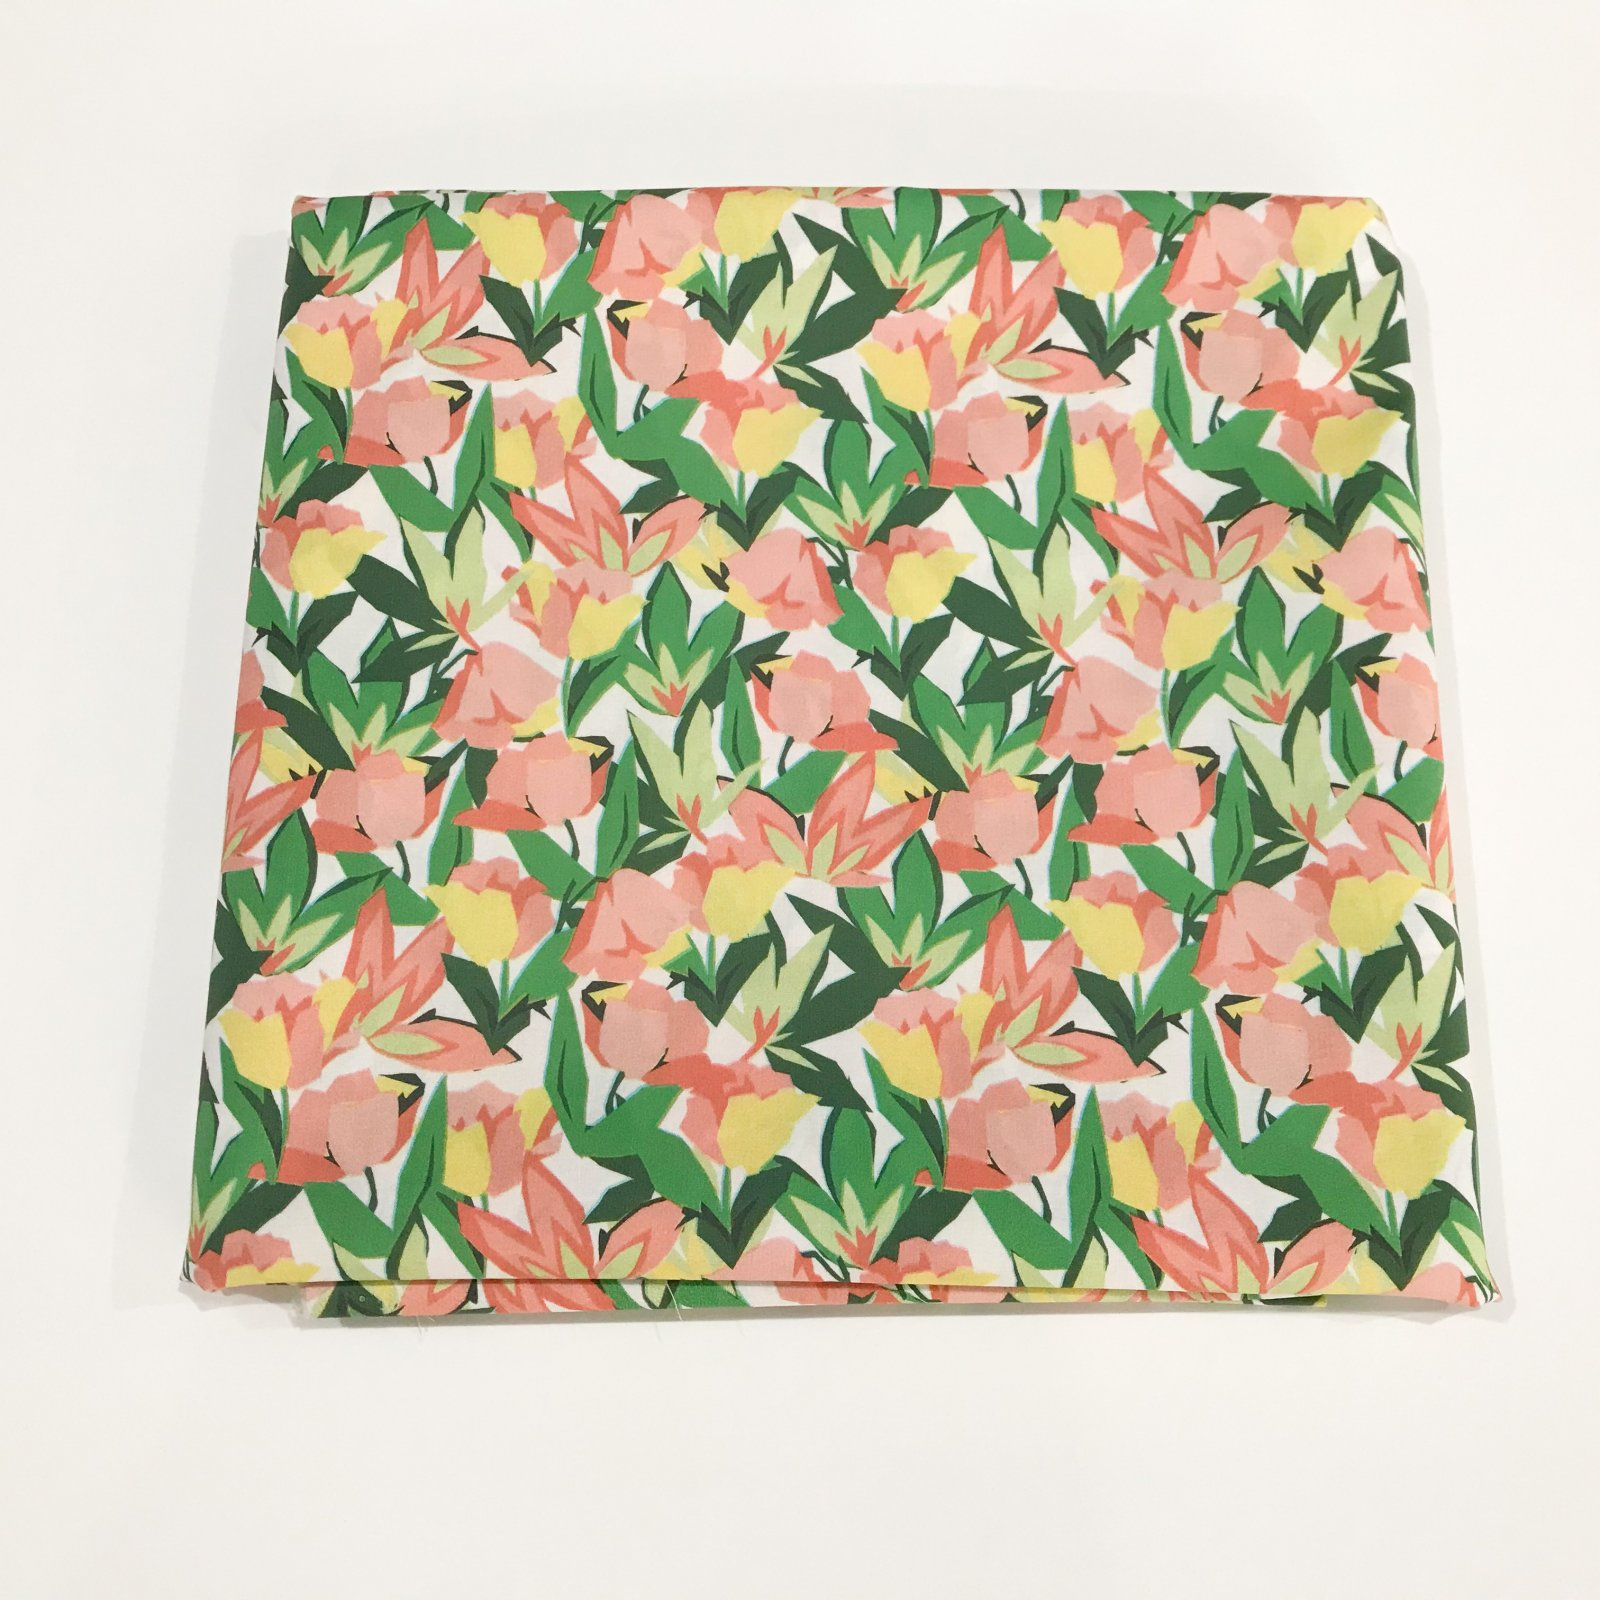 2 yards - Cotton Lawn by Lady McElroy - Summer Bloom